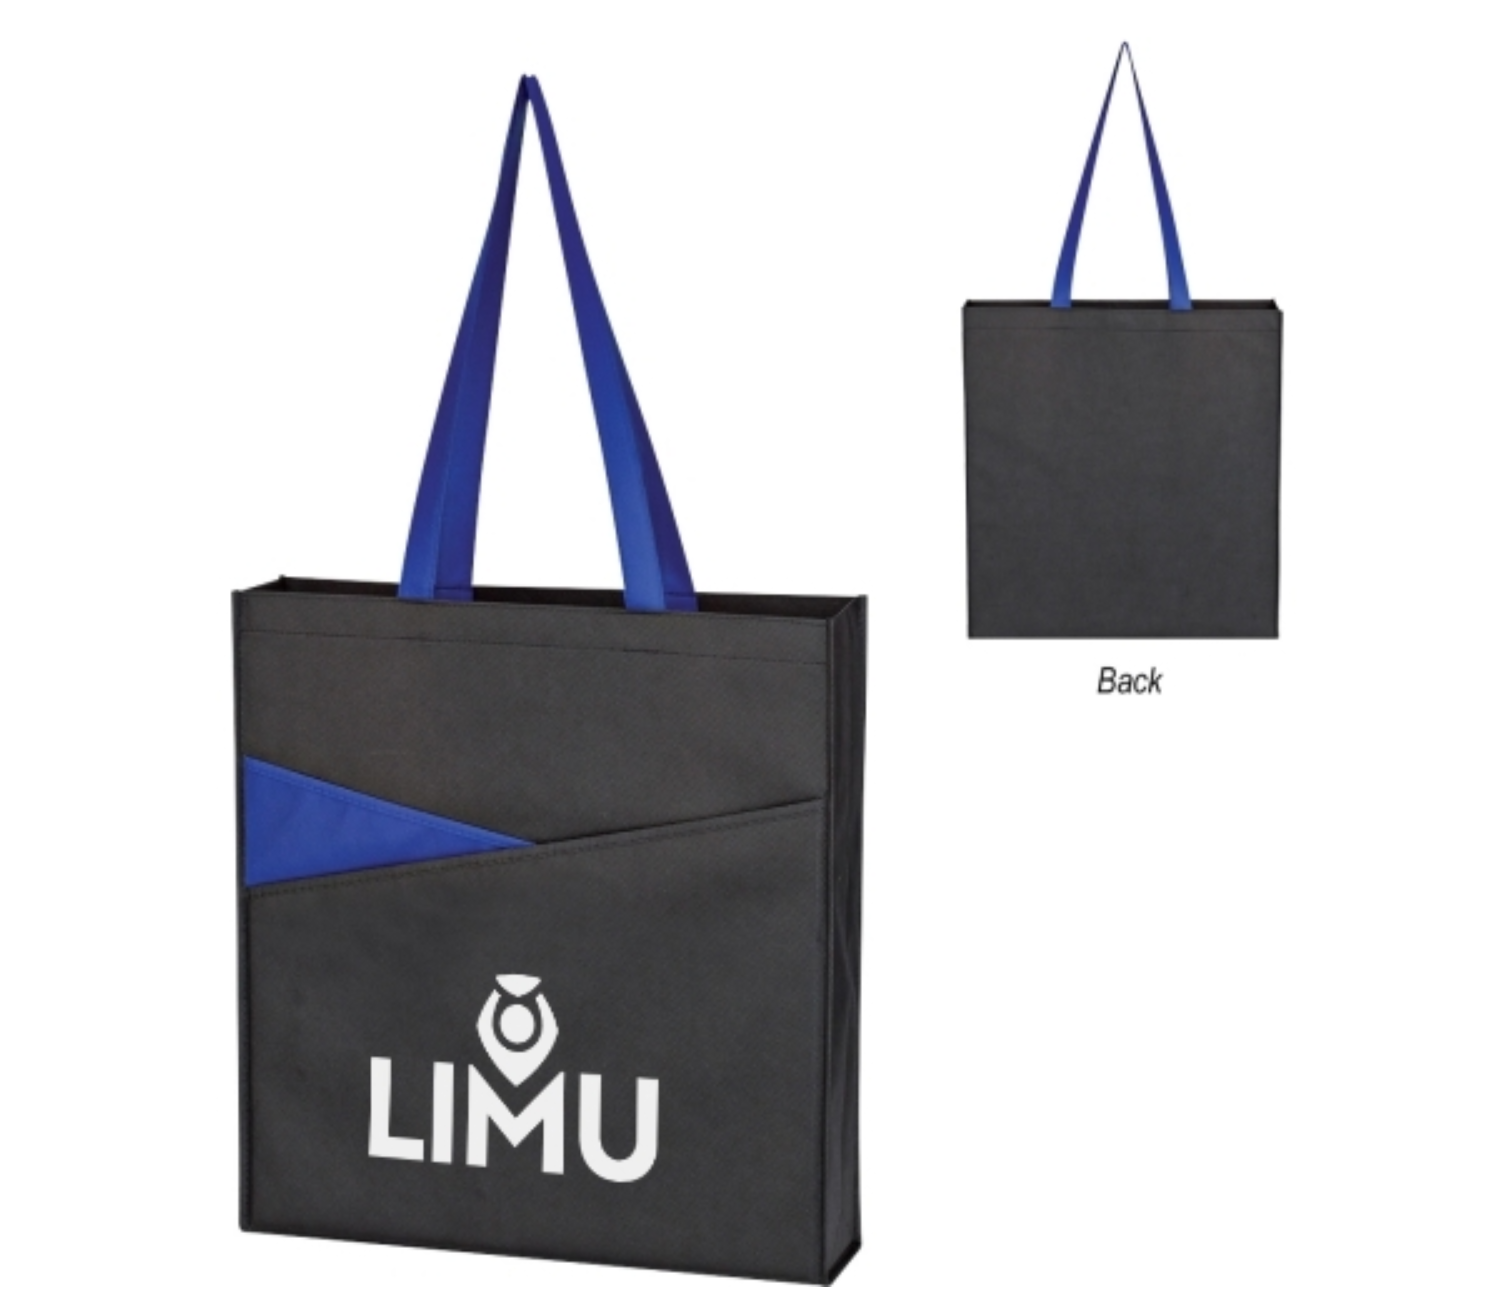 convention tote bags - blue